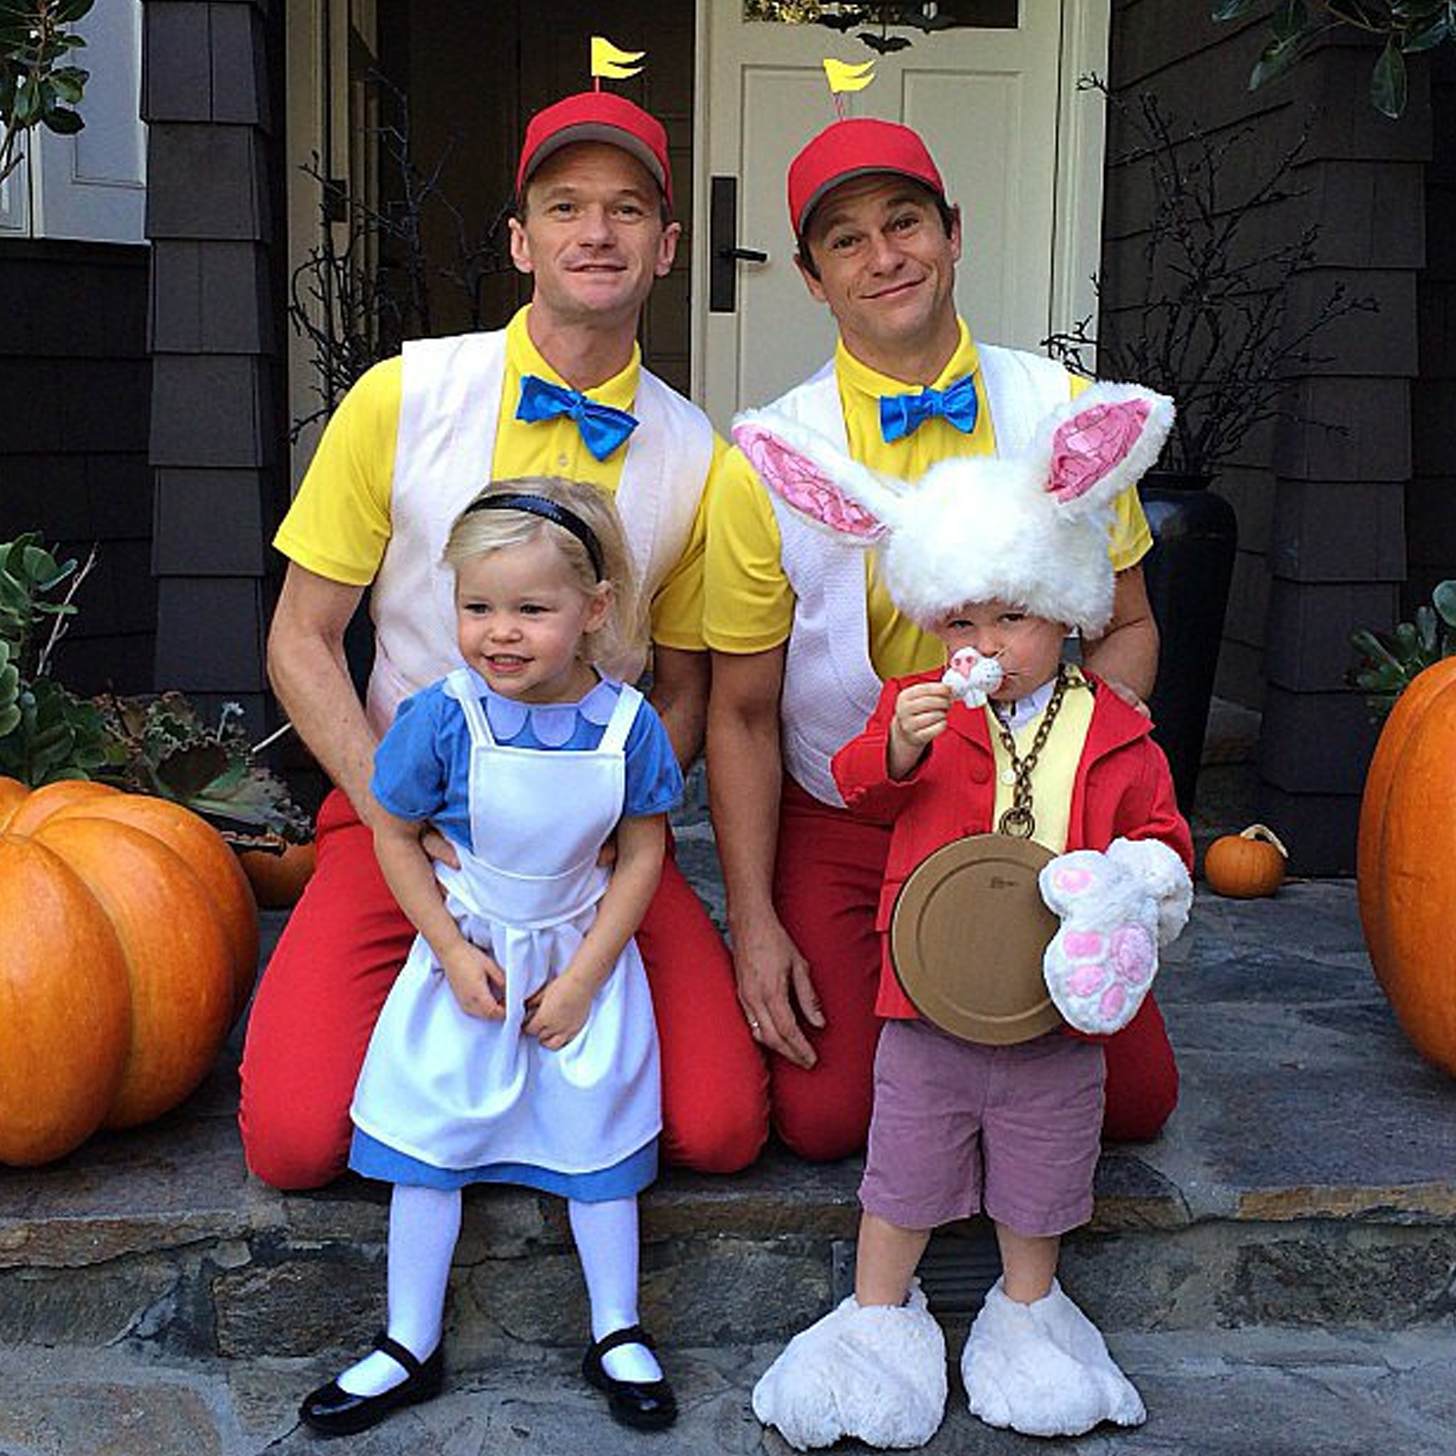 ... celebrity kid Halloween costumes. Image Source  sc 1 st  Richard Magazine & Celebrity Kids Halloween Costumes: See The Best Holiday Ideas